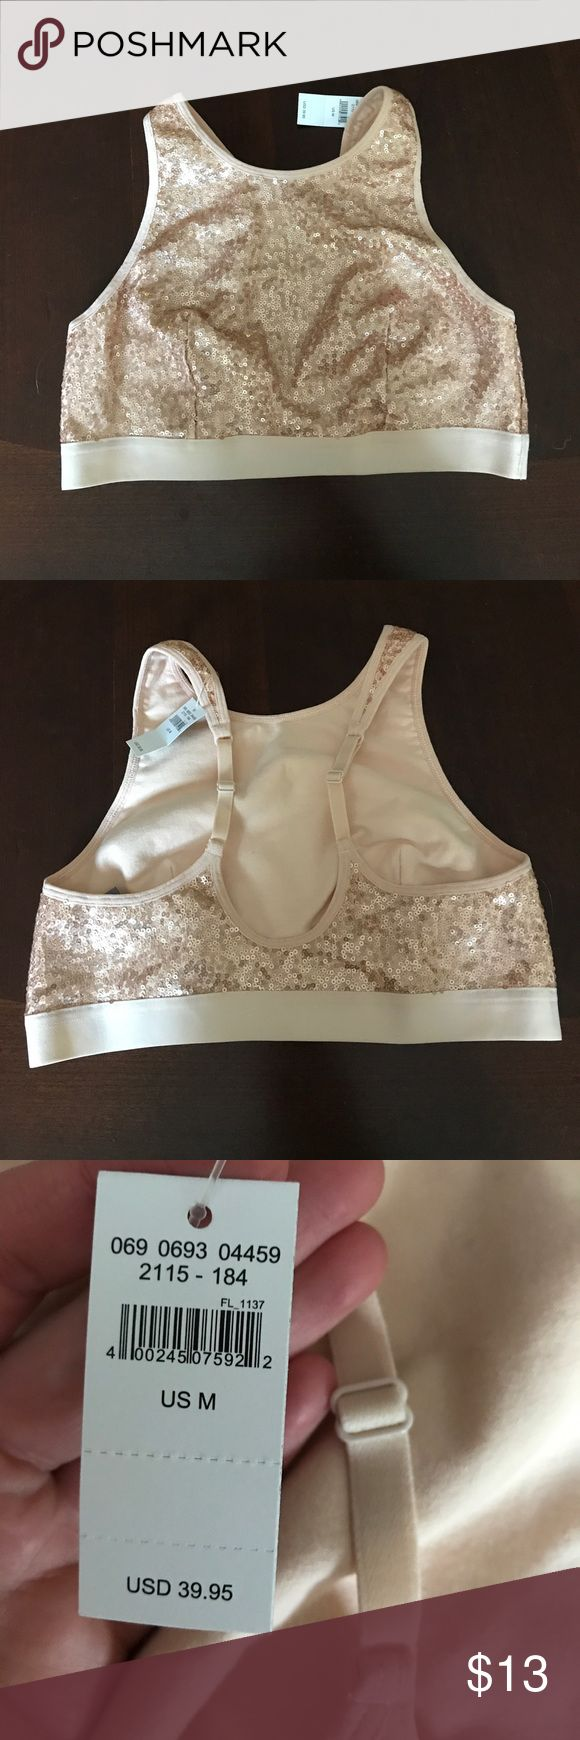 Sports bra Light pink with rose gold sequins all over. Elastic waste band around bottom, with a tank top style straps that are adjustable! Would also be really cute worn as a crop top! aerie Intimates & Sleepwear Bras